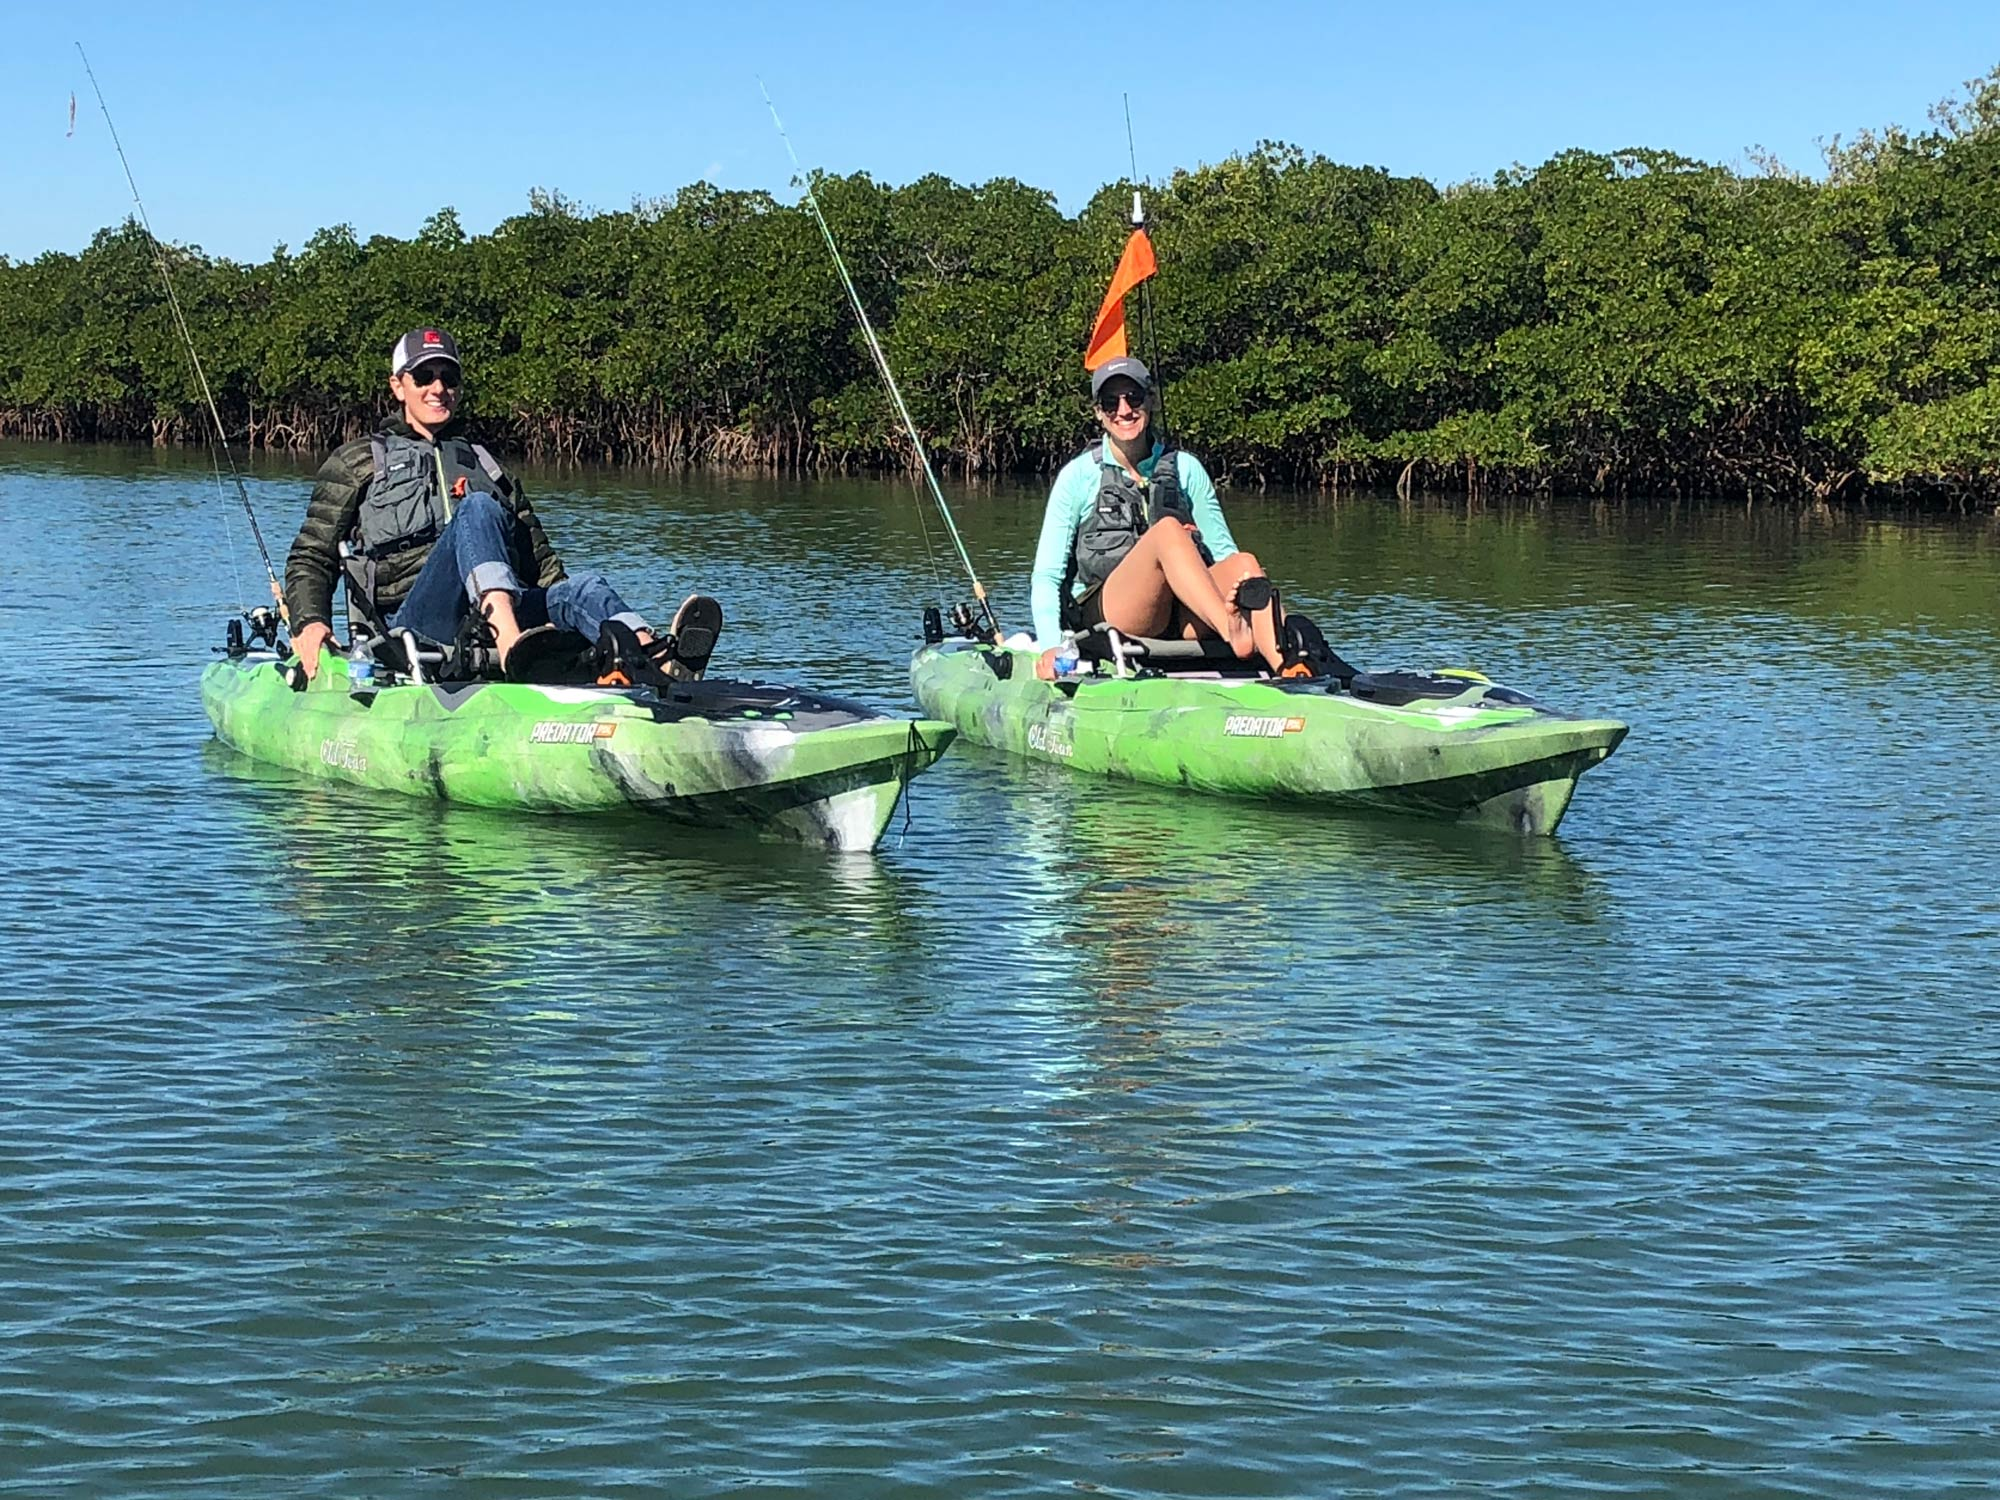 Two anglers paddling sided by side in kayaks